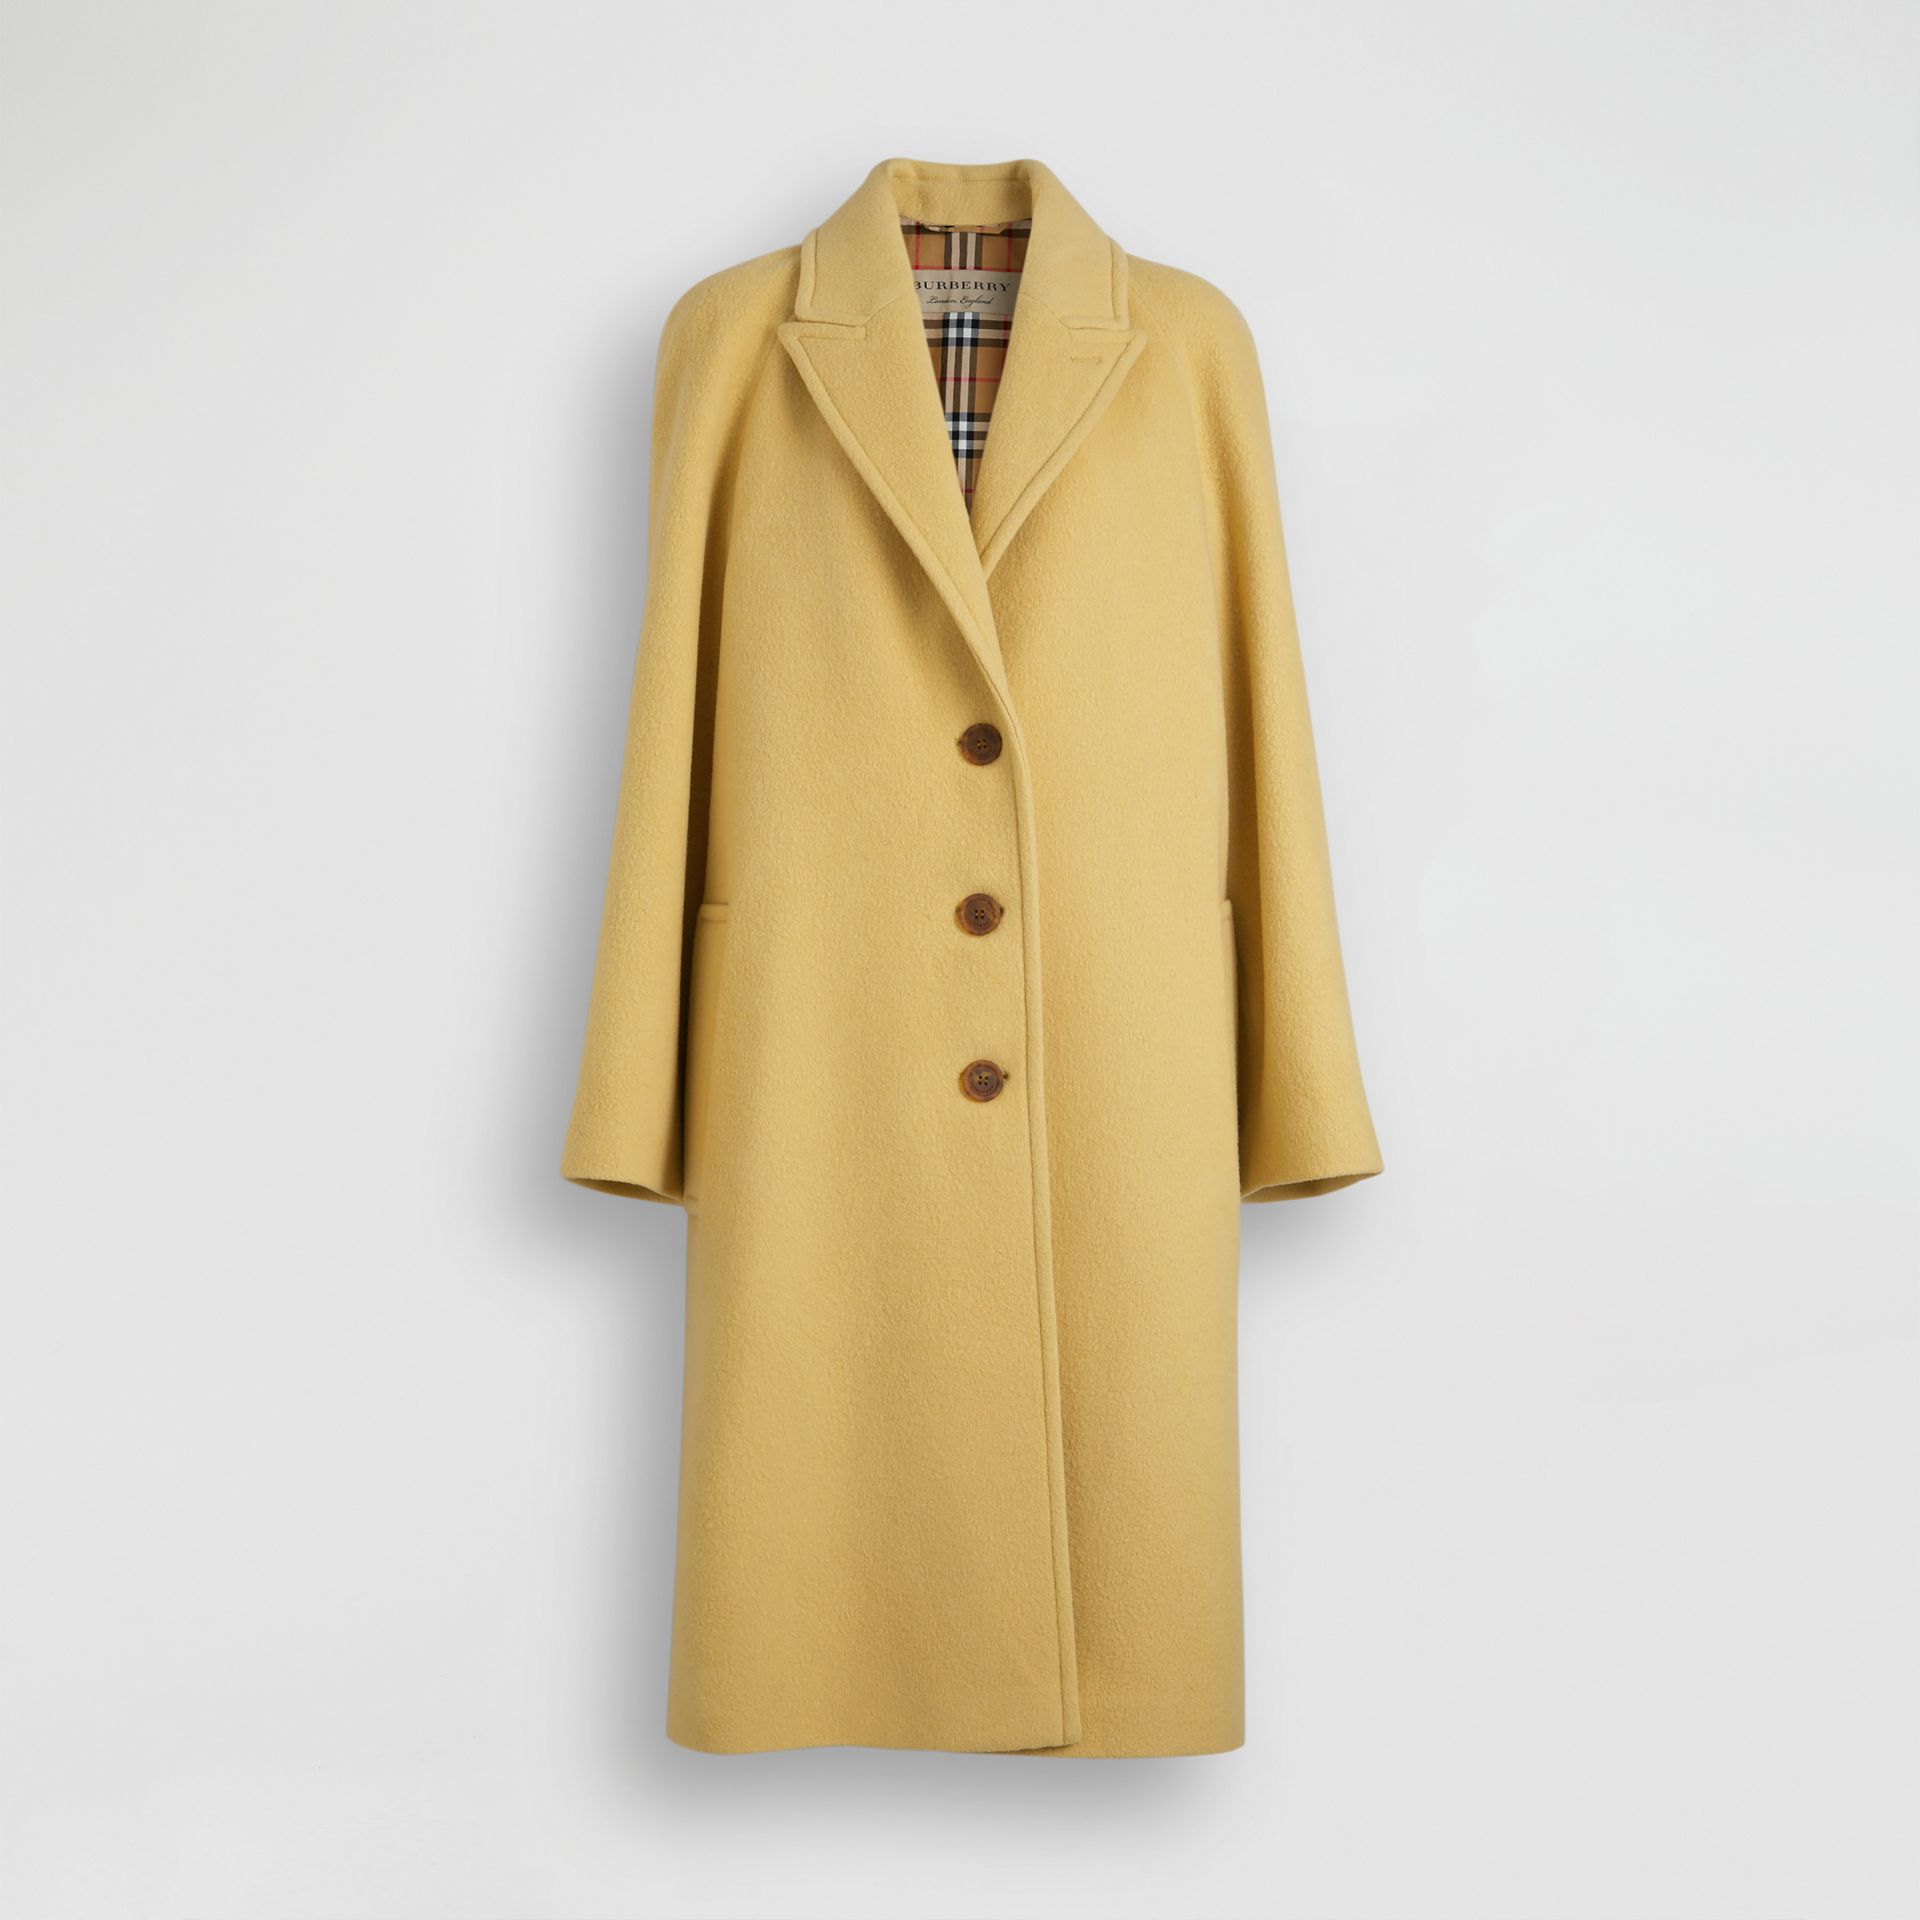 Wool Blend Tailored Coat in Camomile - Women | Burberry - gallery image 3